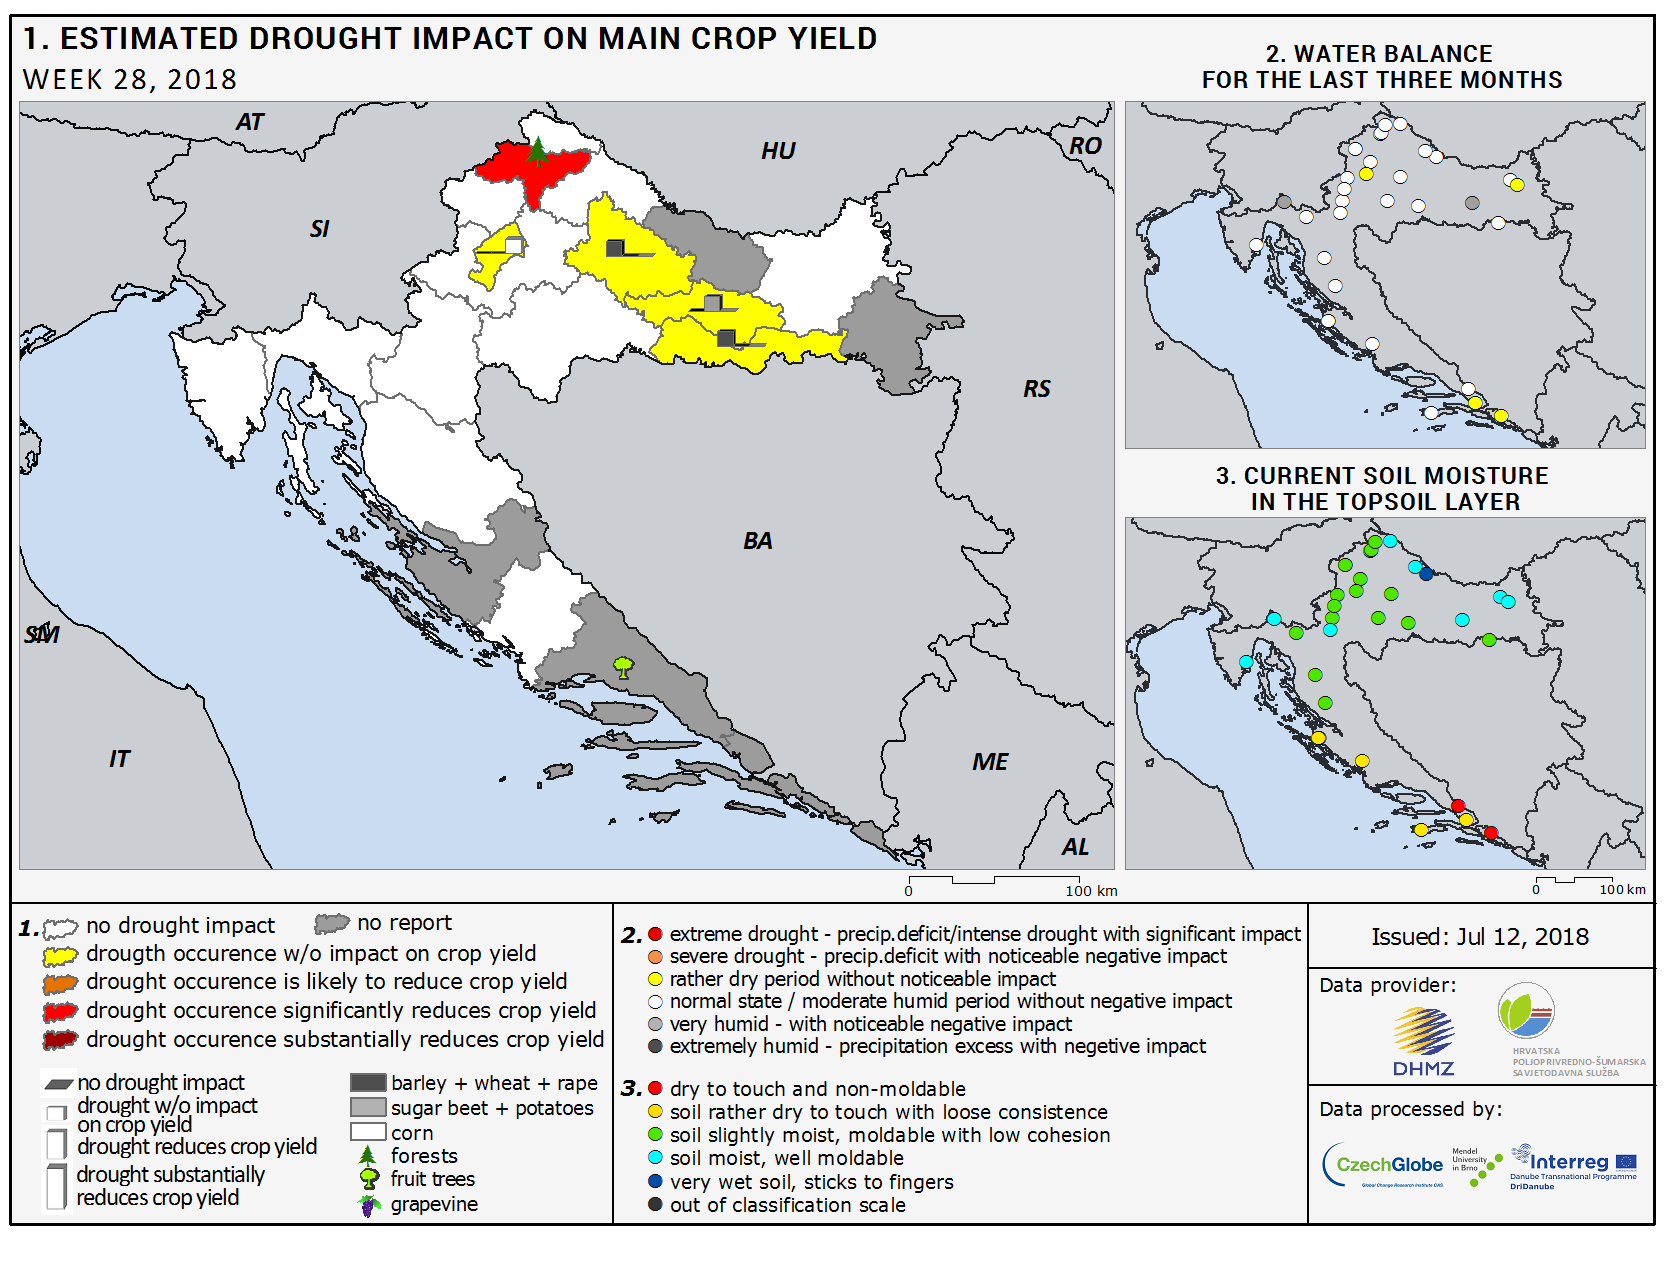 DHMZ - Croatian Meteorological and Hydrological Service